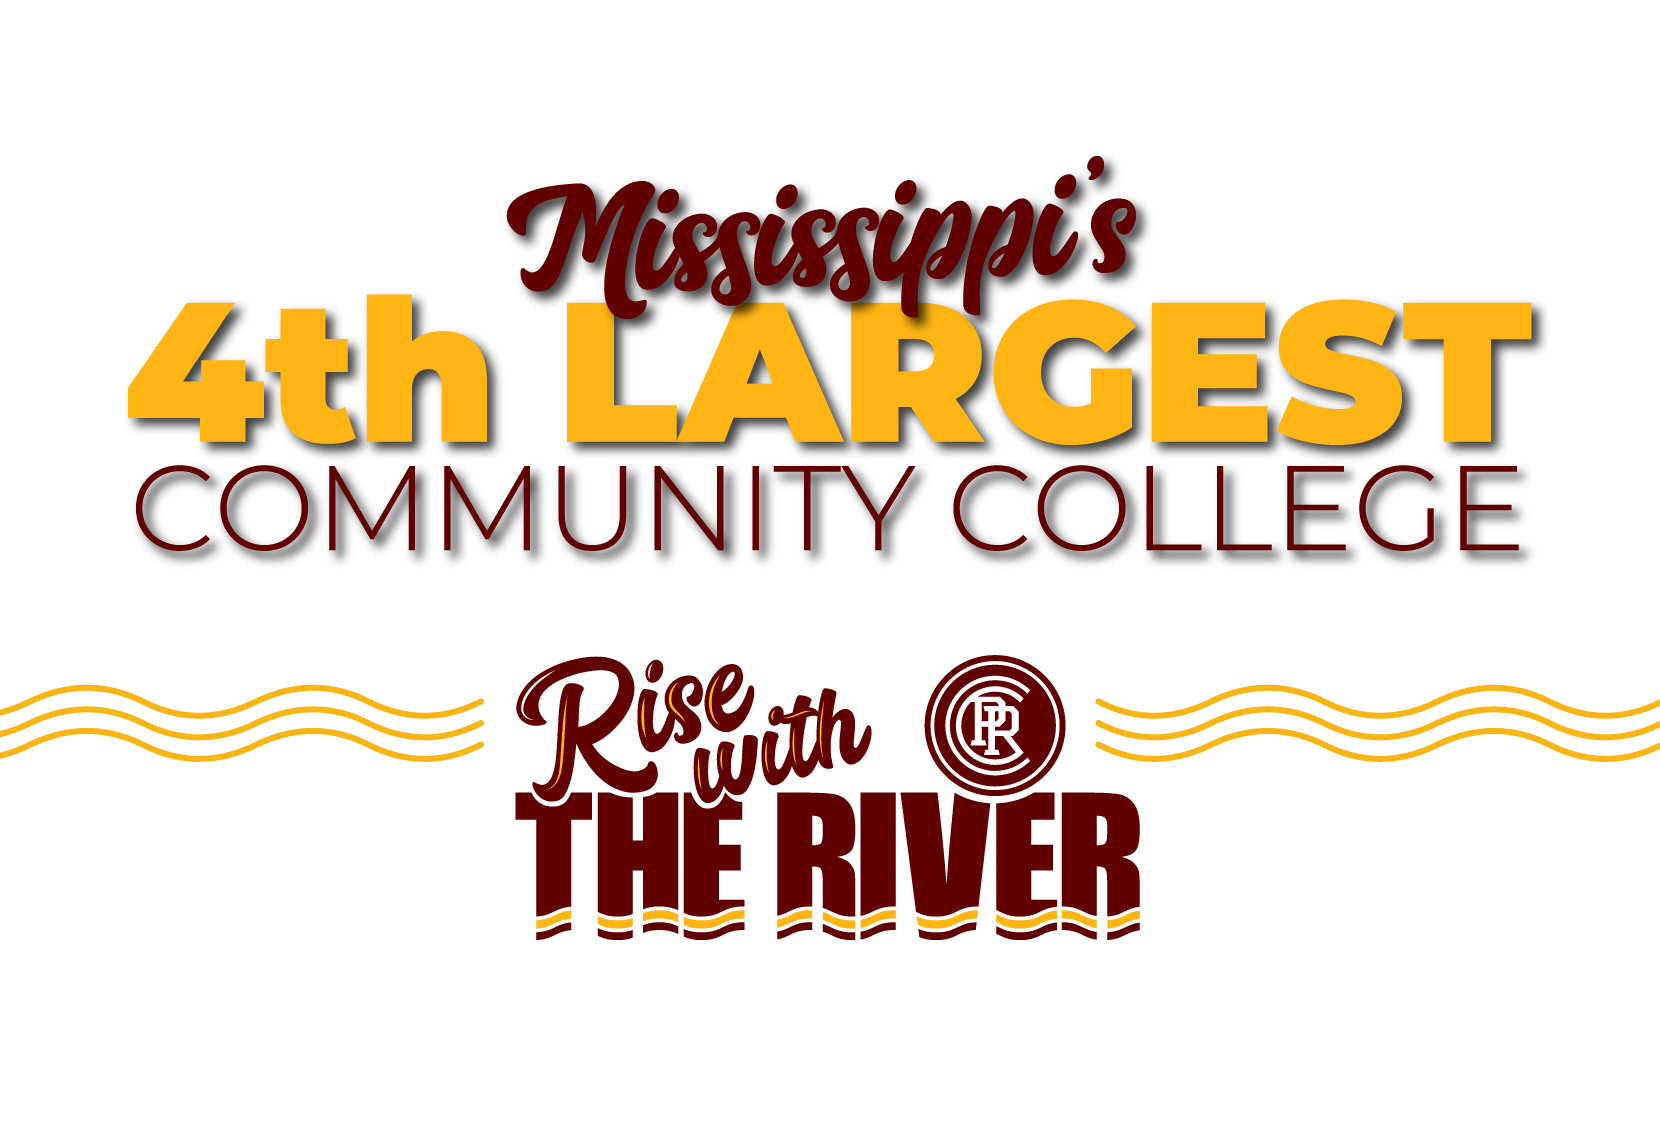 PRCC is now 4th largest community college in Mississippi!